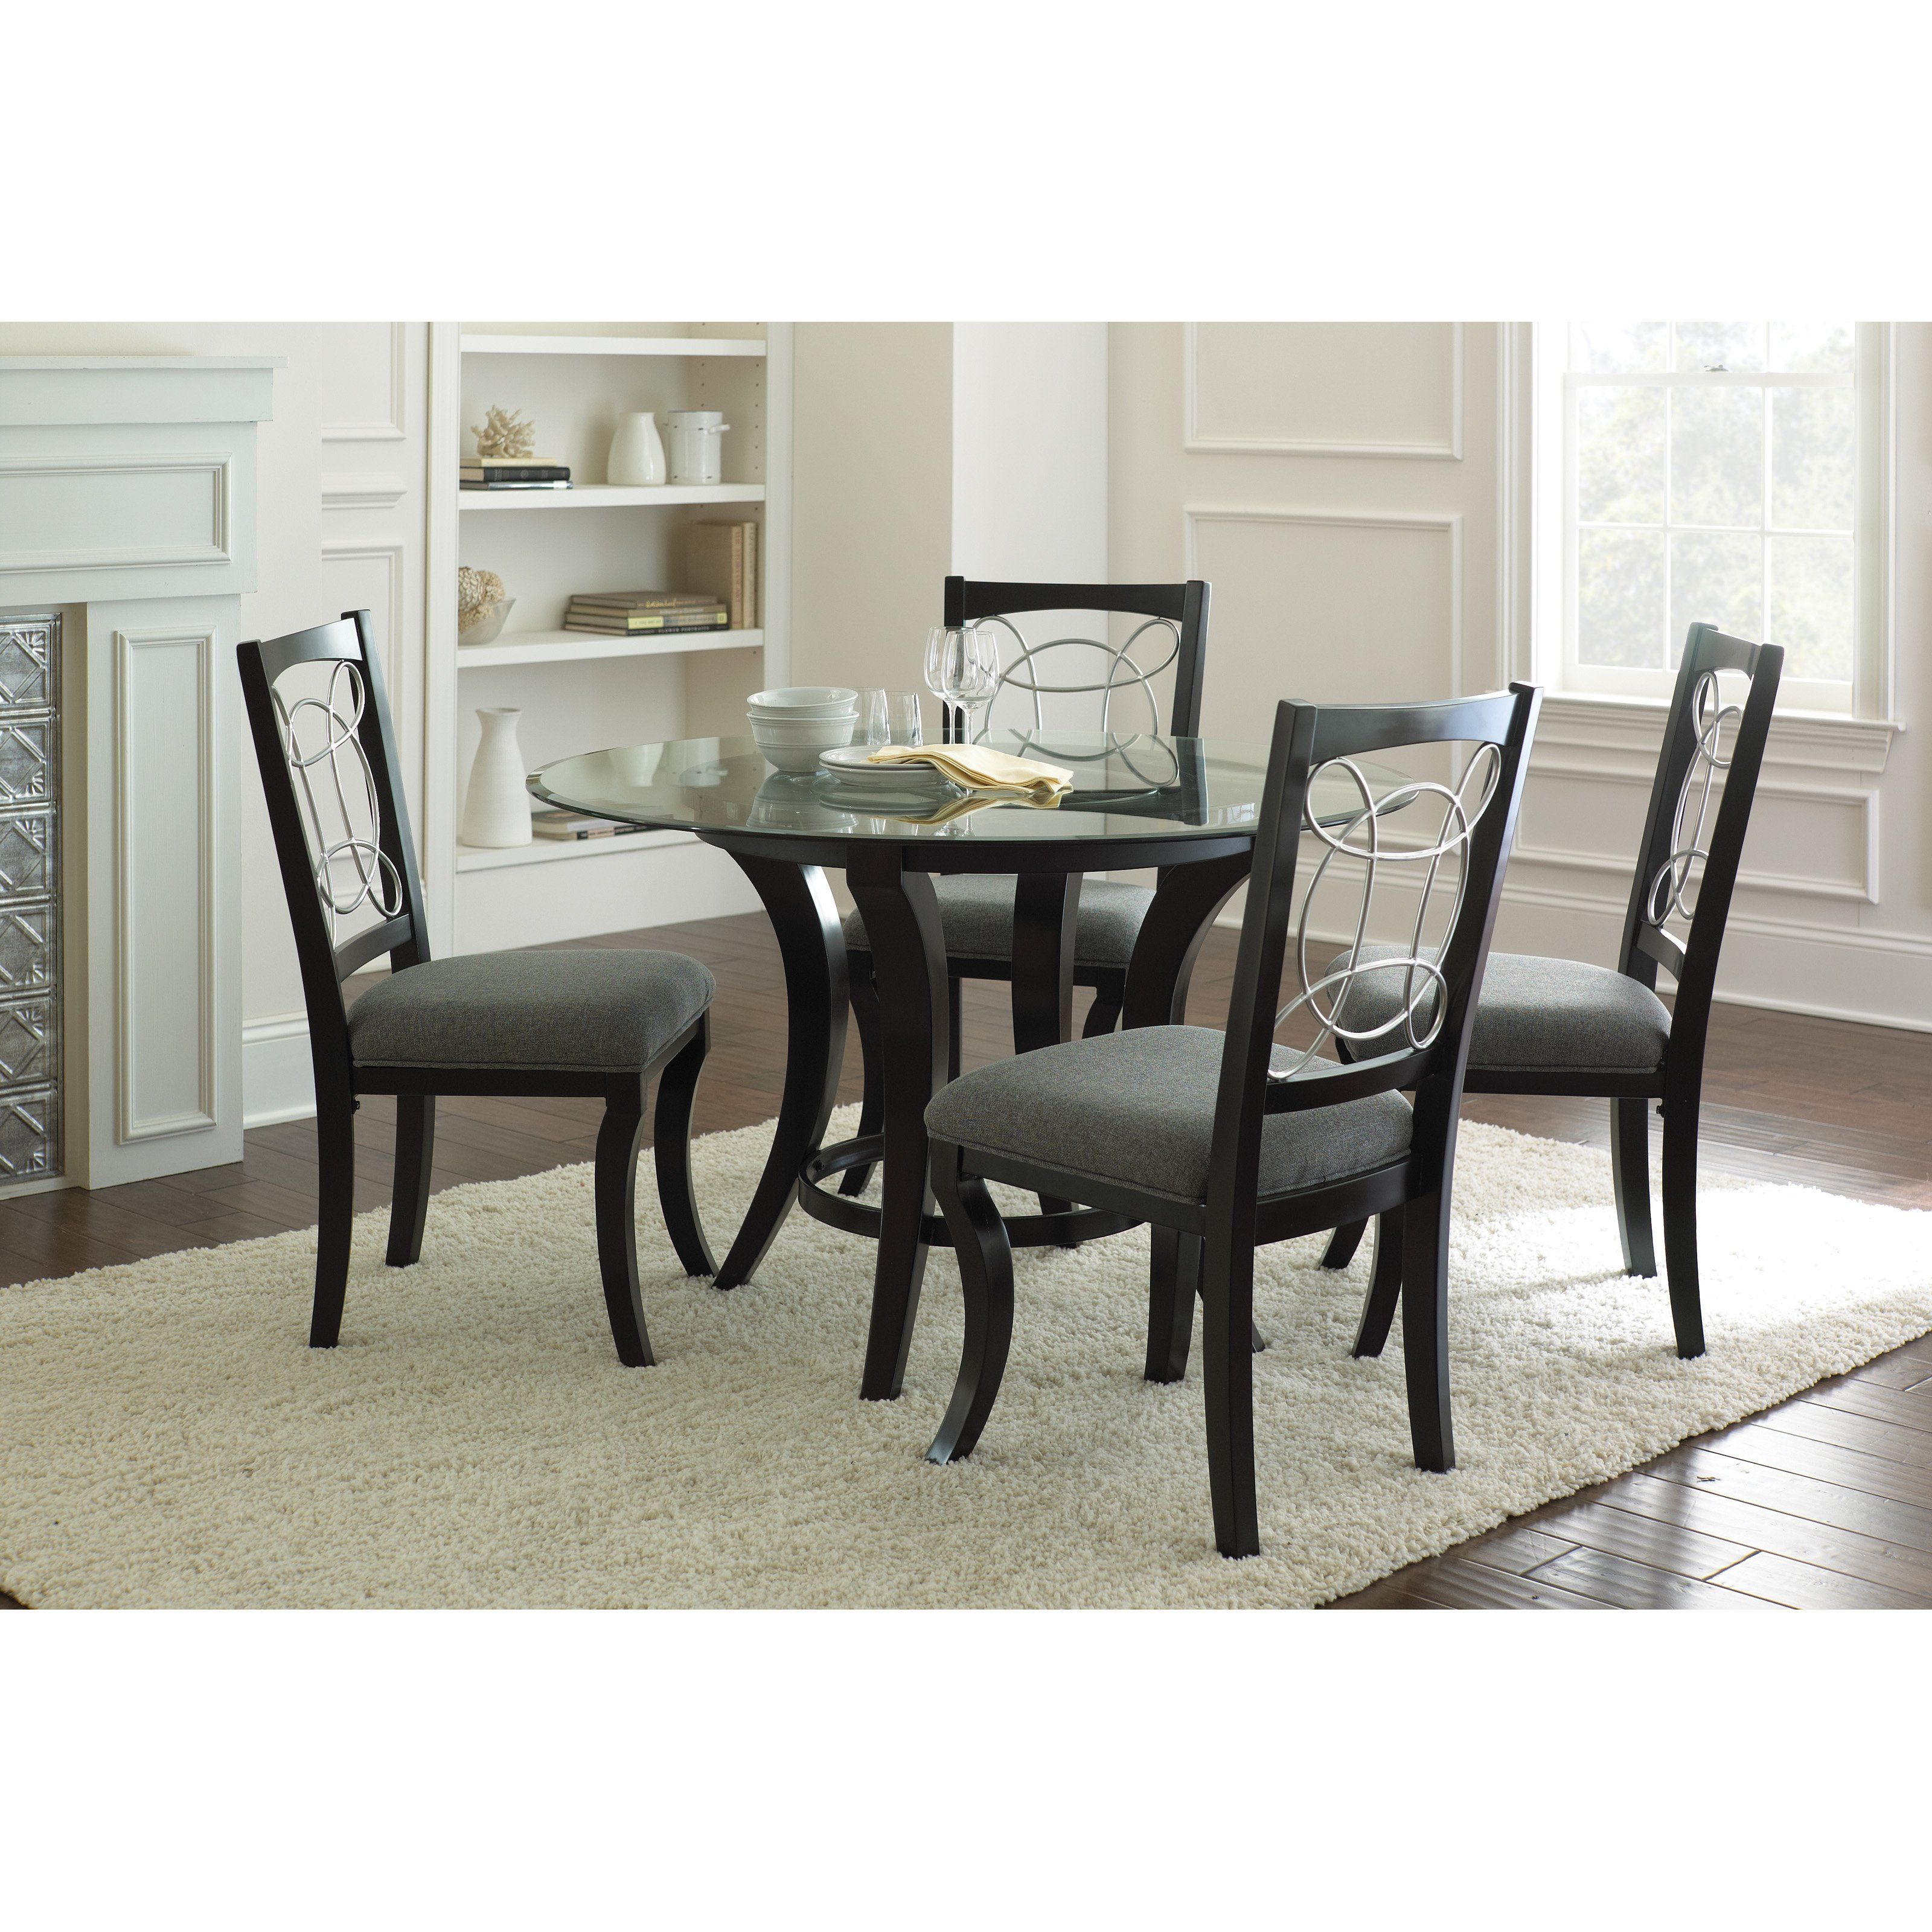 Steve Silver Cayman 5 Piece Glass Top Dining Set   Black | From  Hayneedle.com